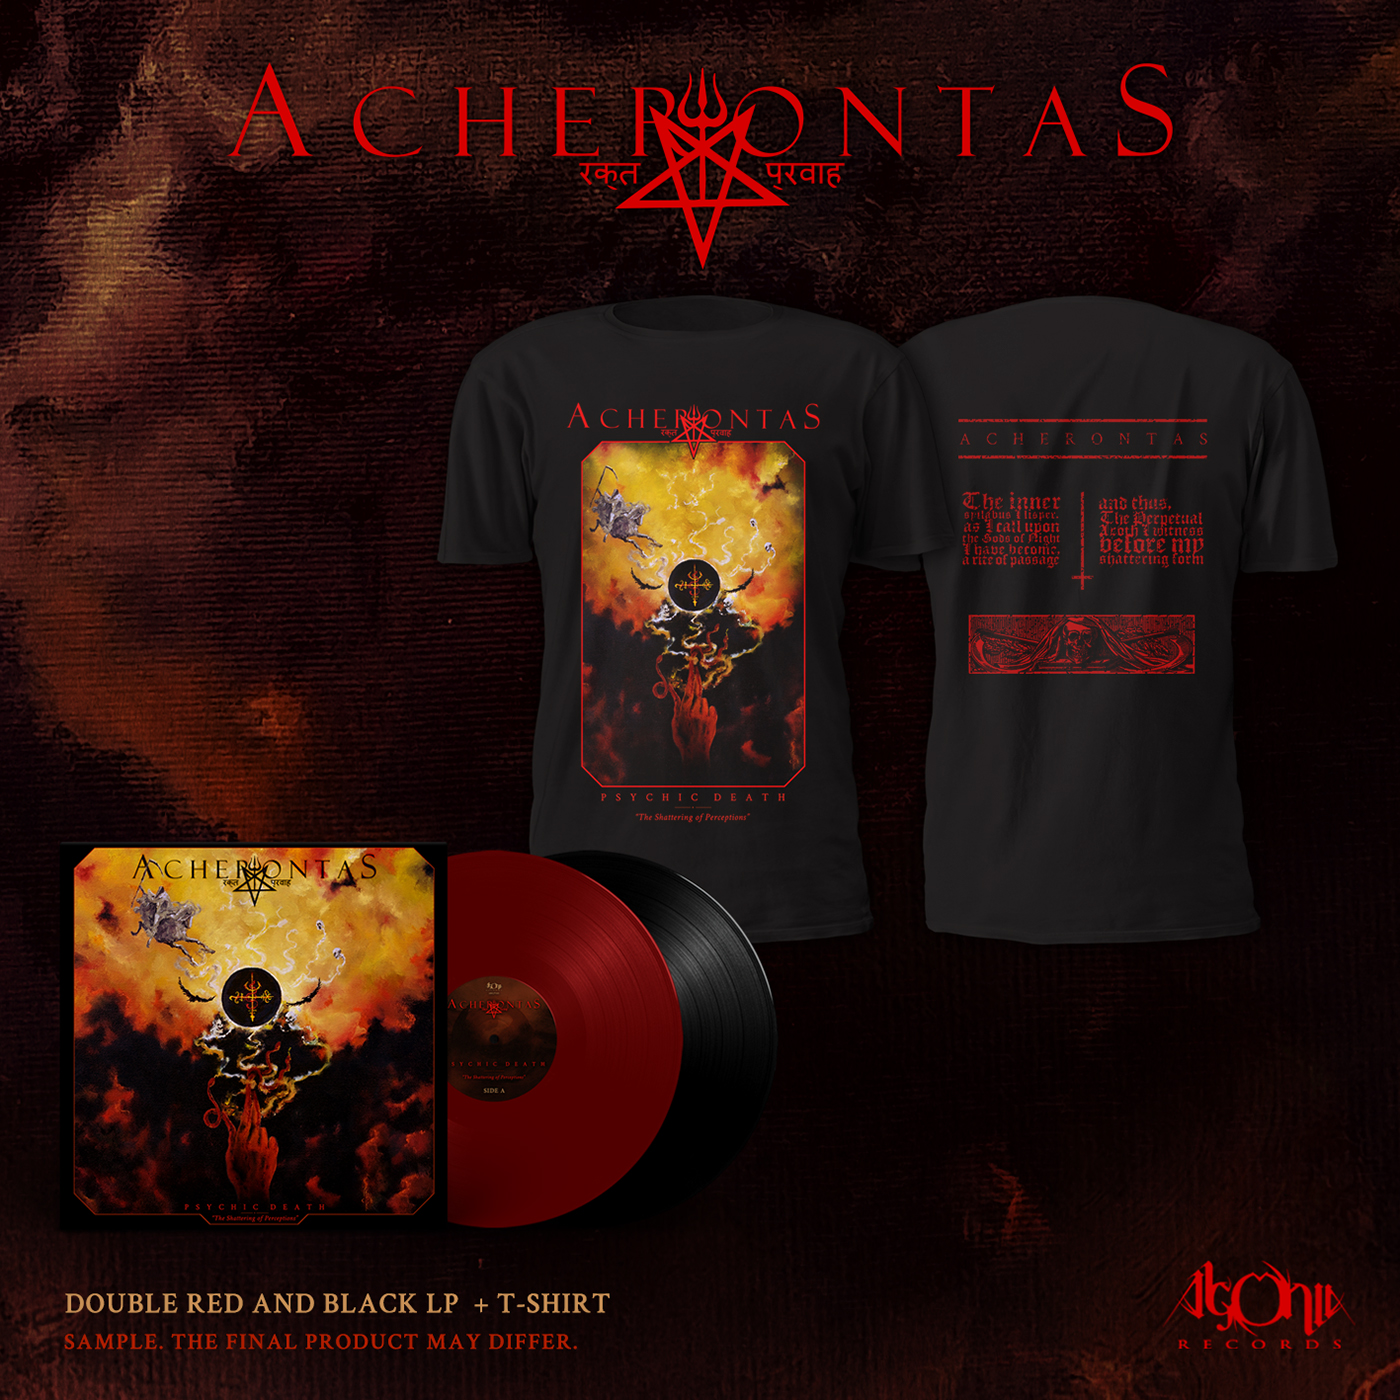 Psychicdeath Limited Black/Red Vinyl Bundle